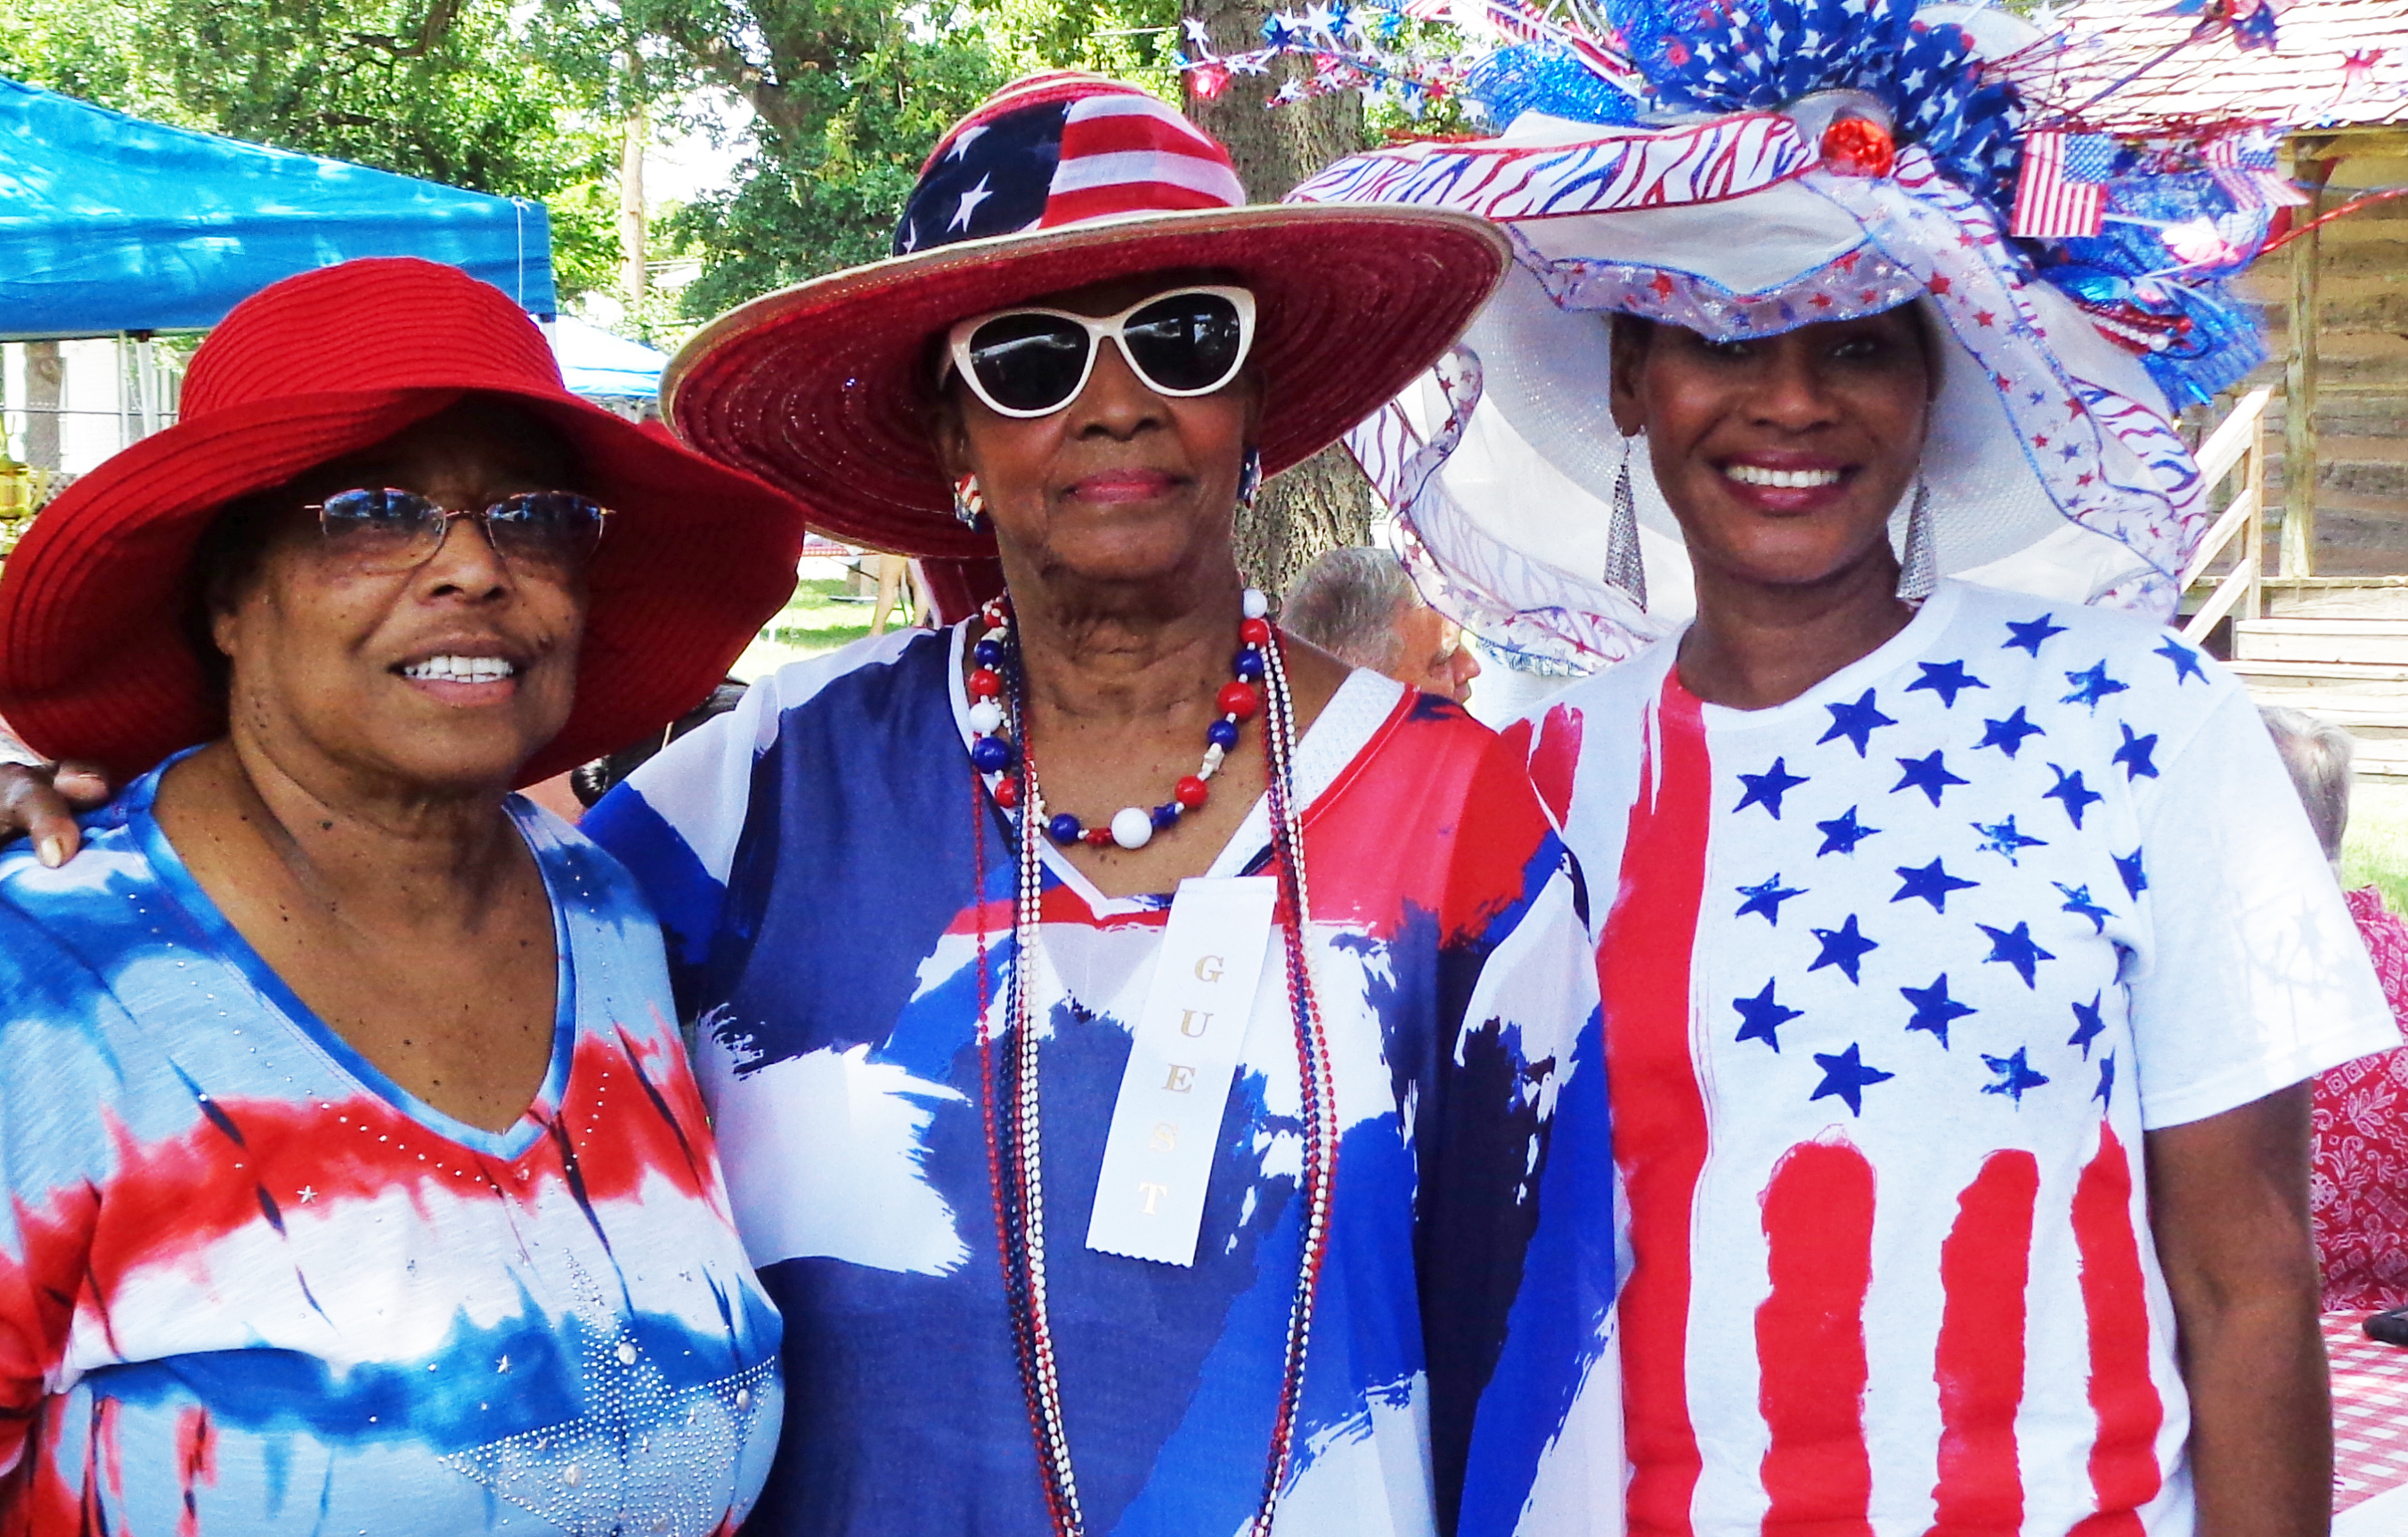 Rudy Odom Patriotic Hat Contest for the 4th of July